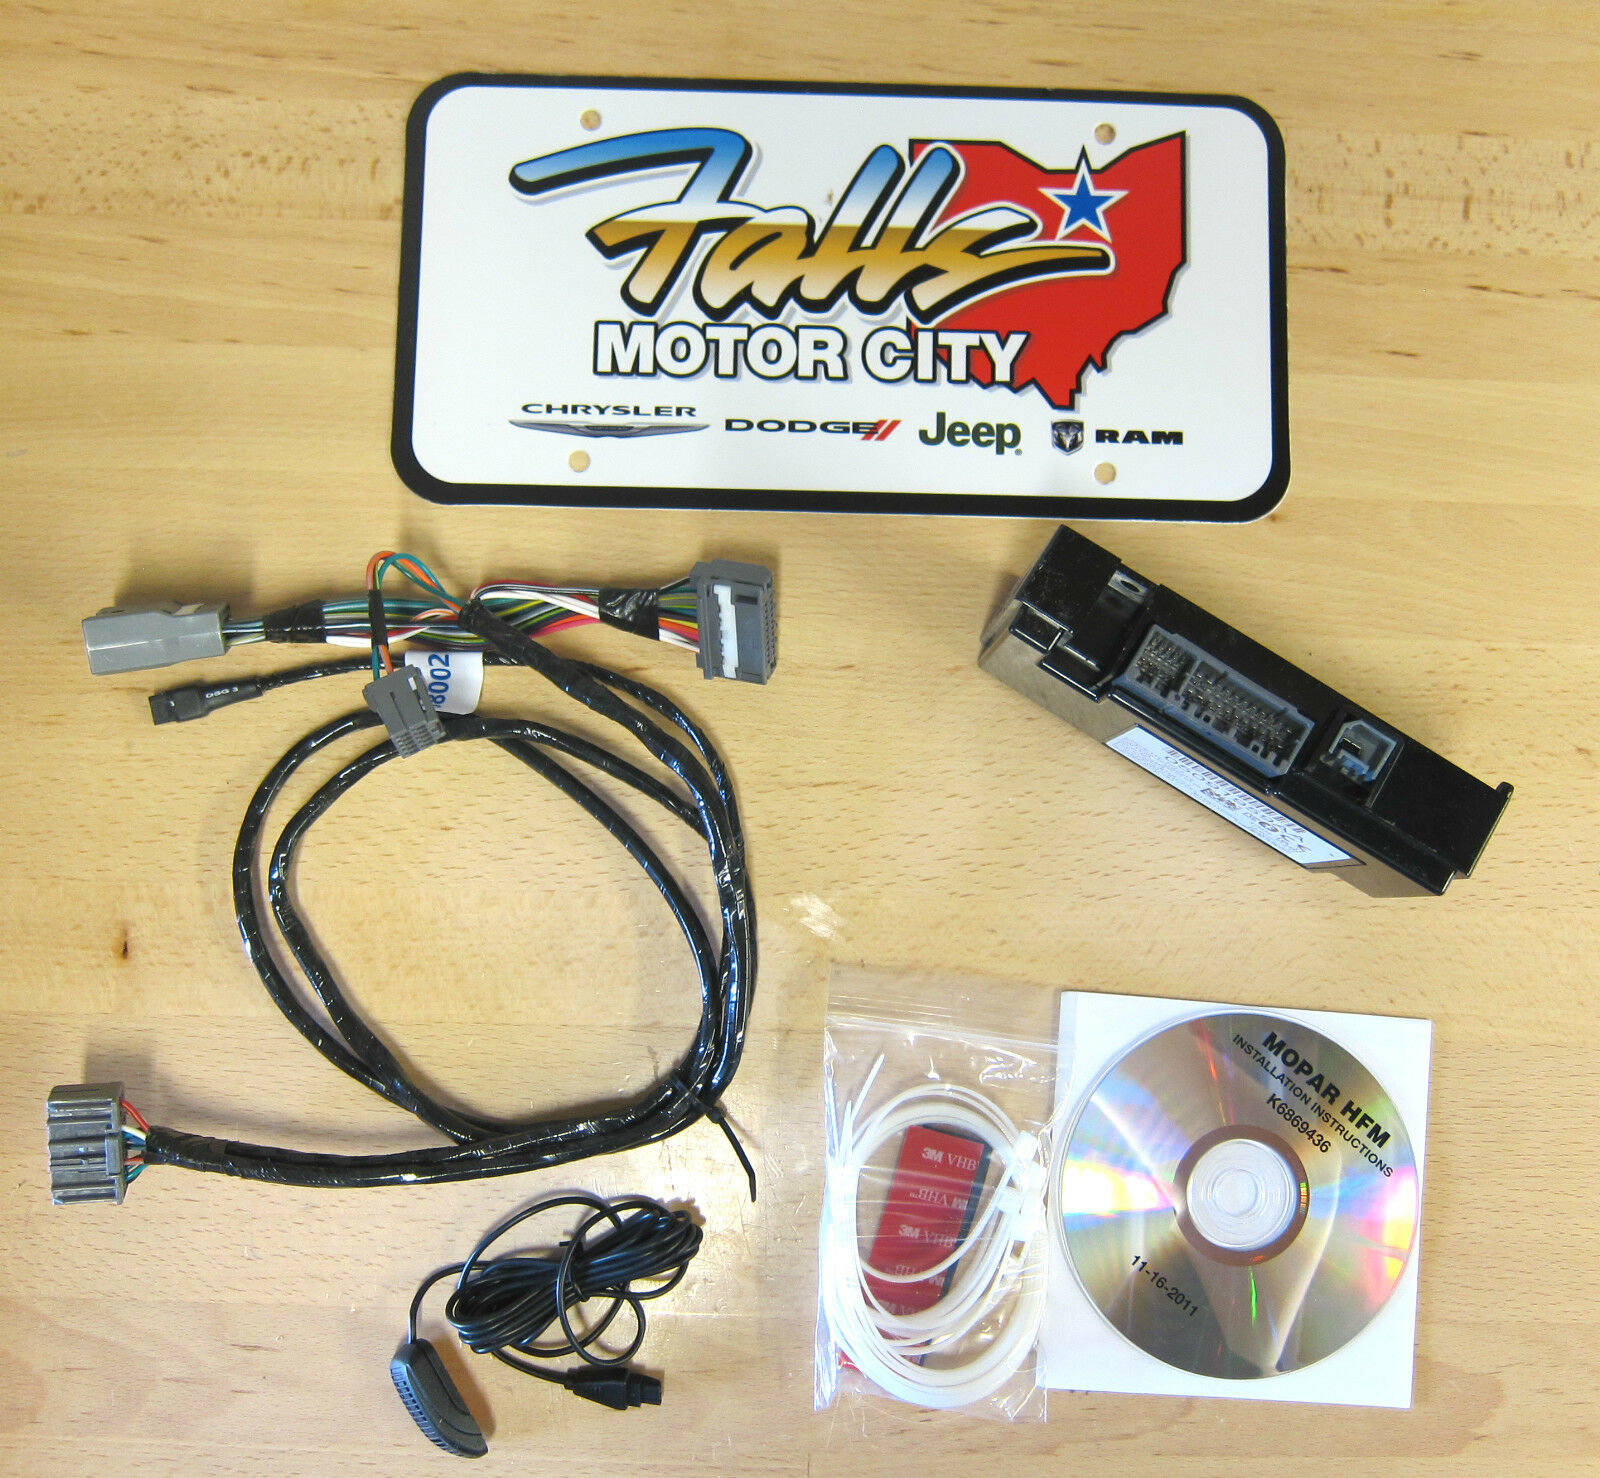 Chrysler 300 300c 2006 2d Small Dash Kit: Possible To Upgrade Head Unit In 2012 300?